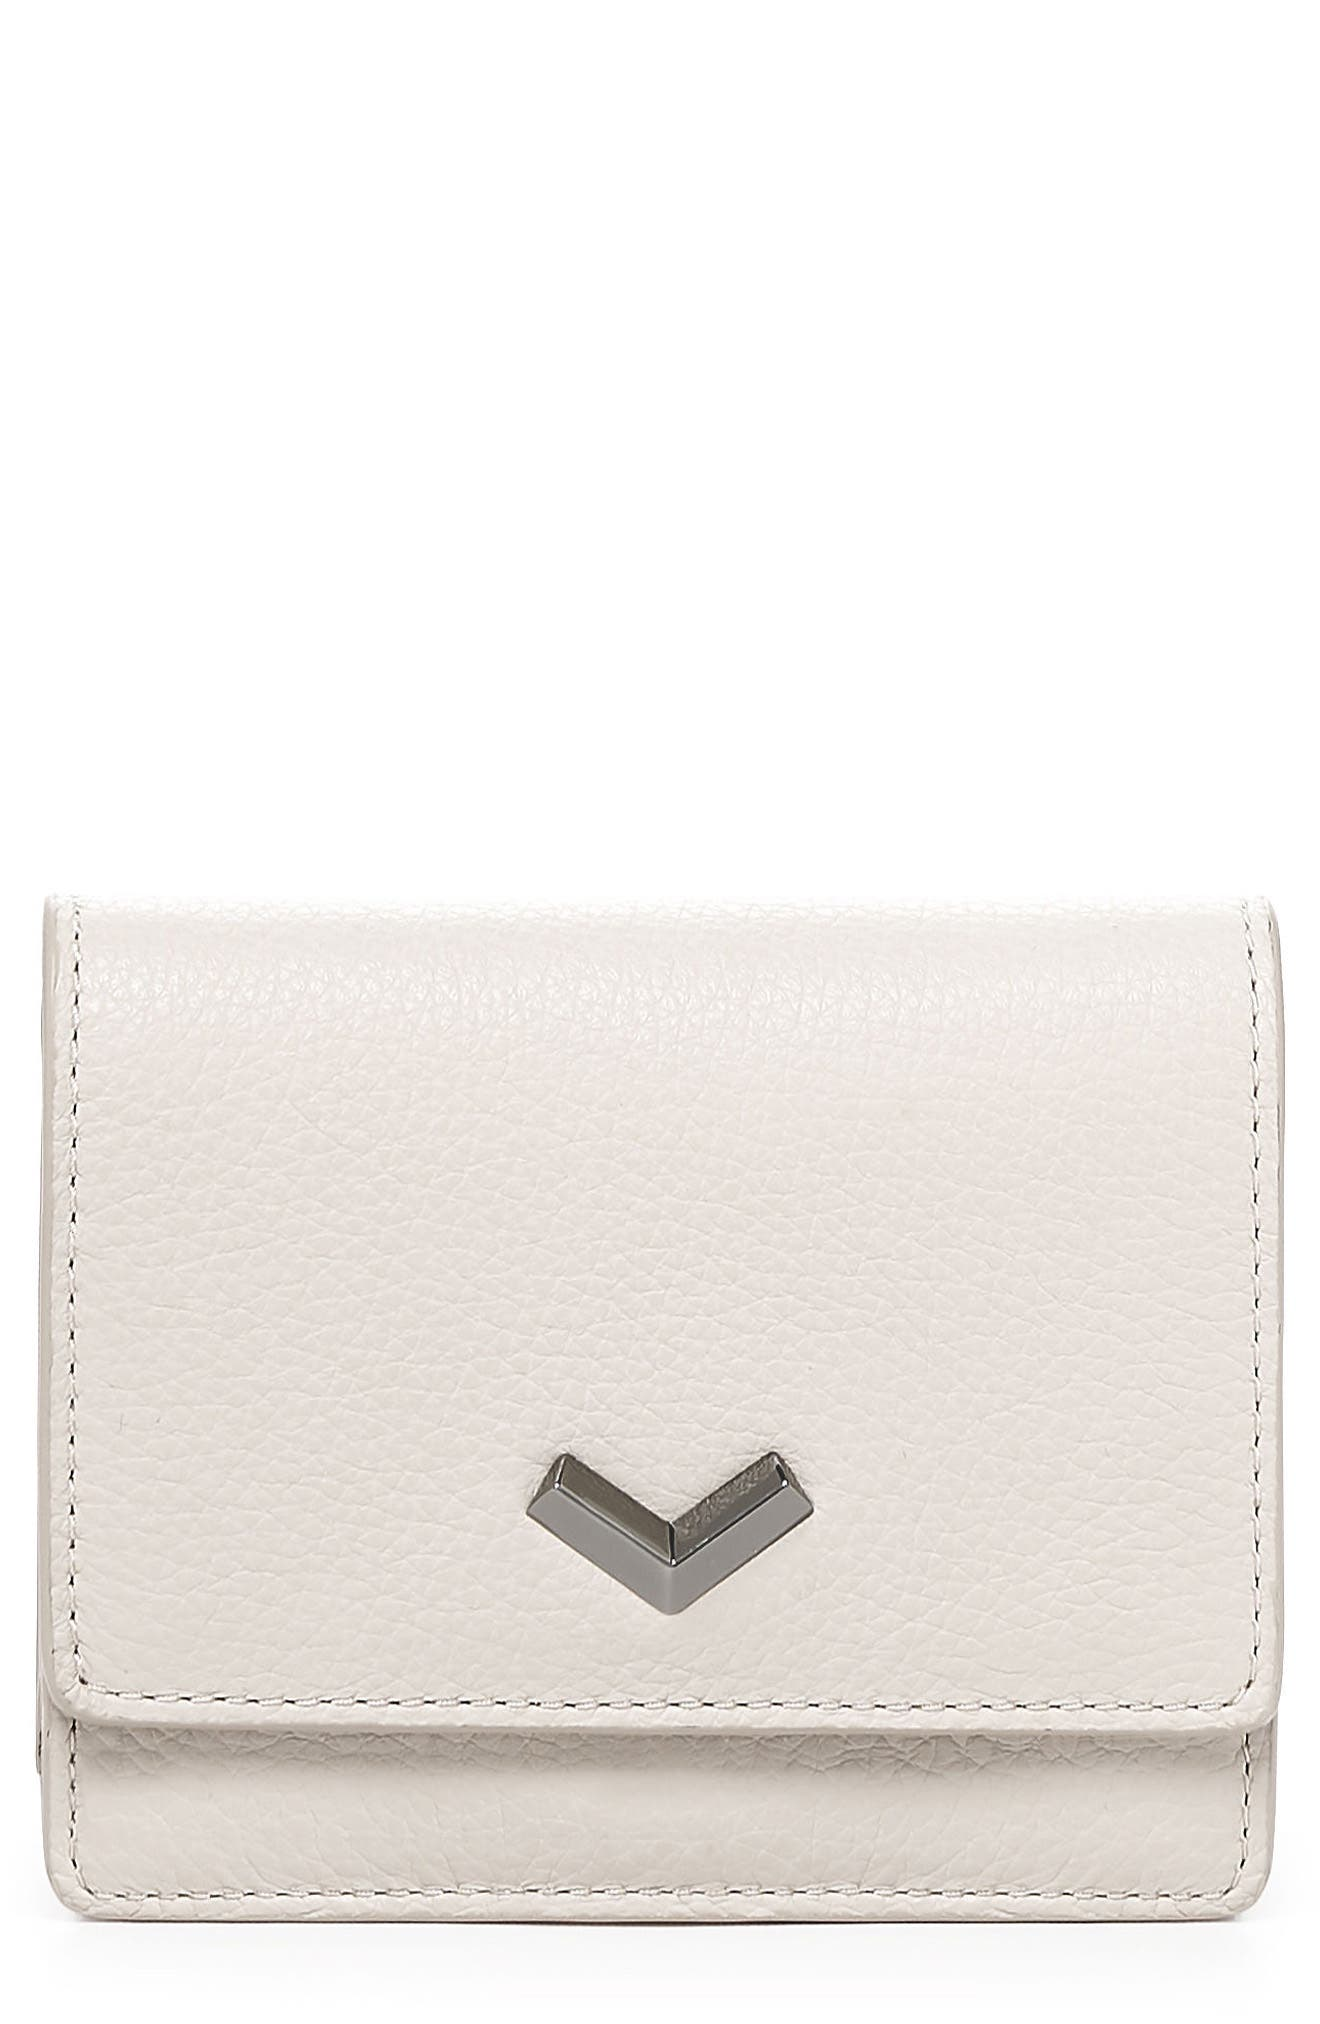 Botkier Soho Mini Leather Wallet